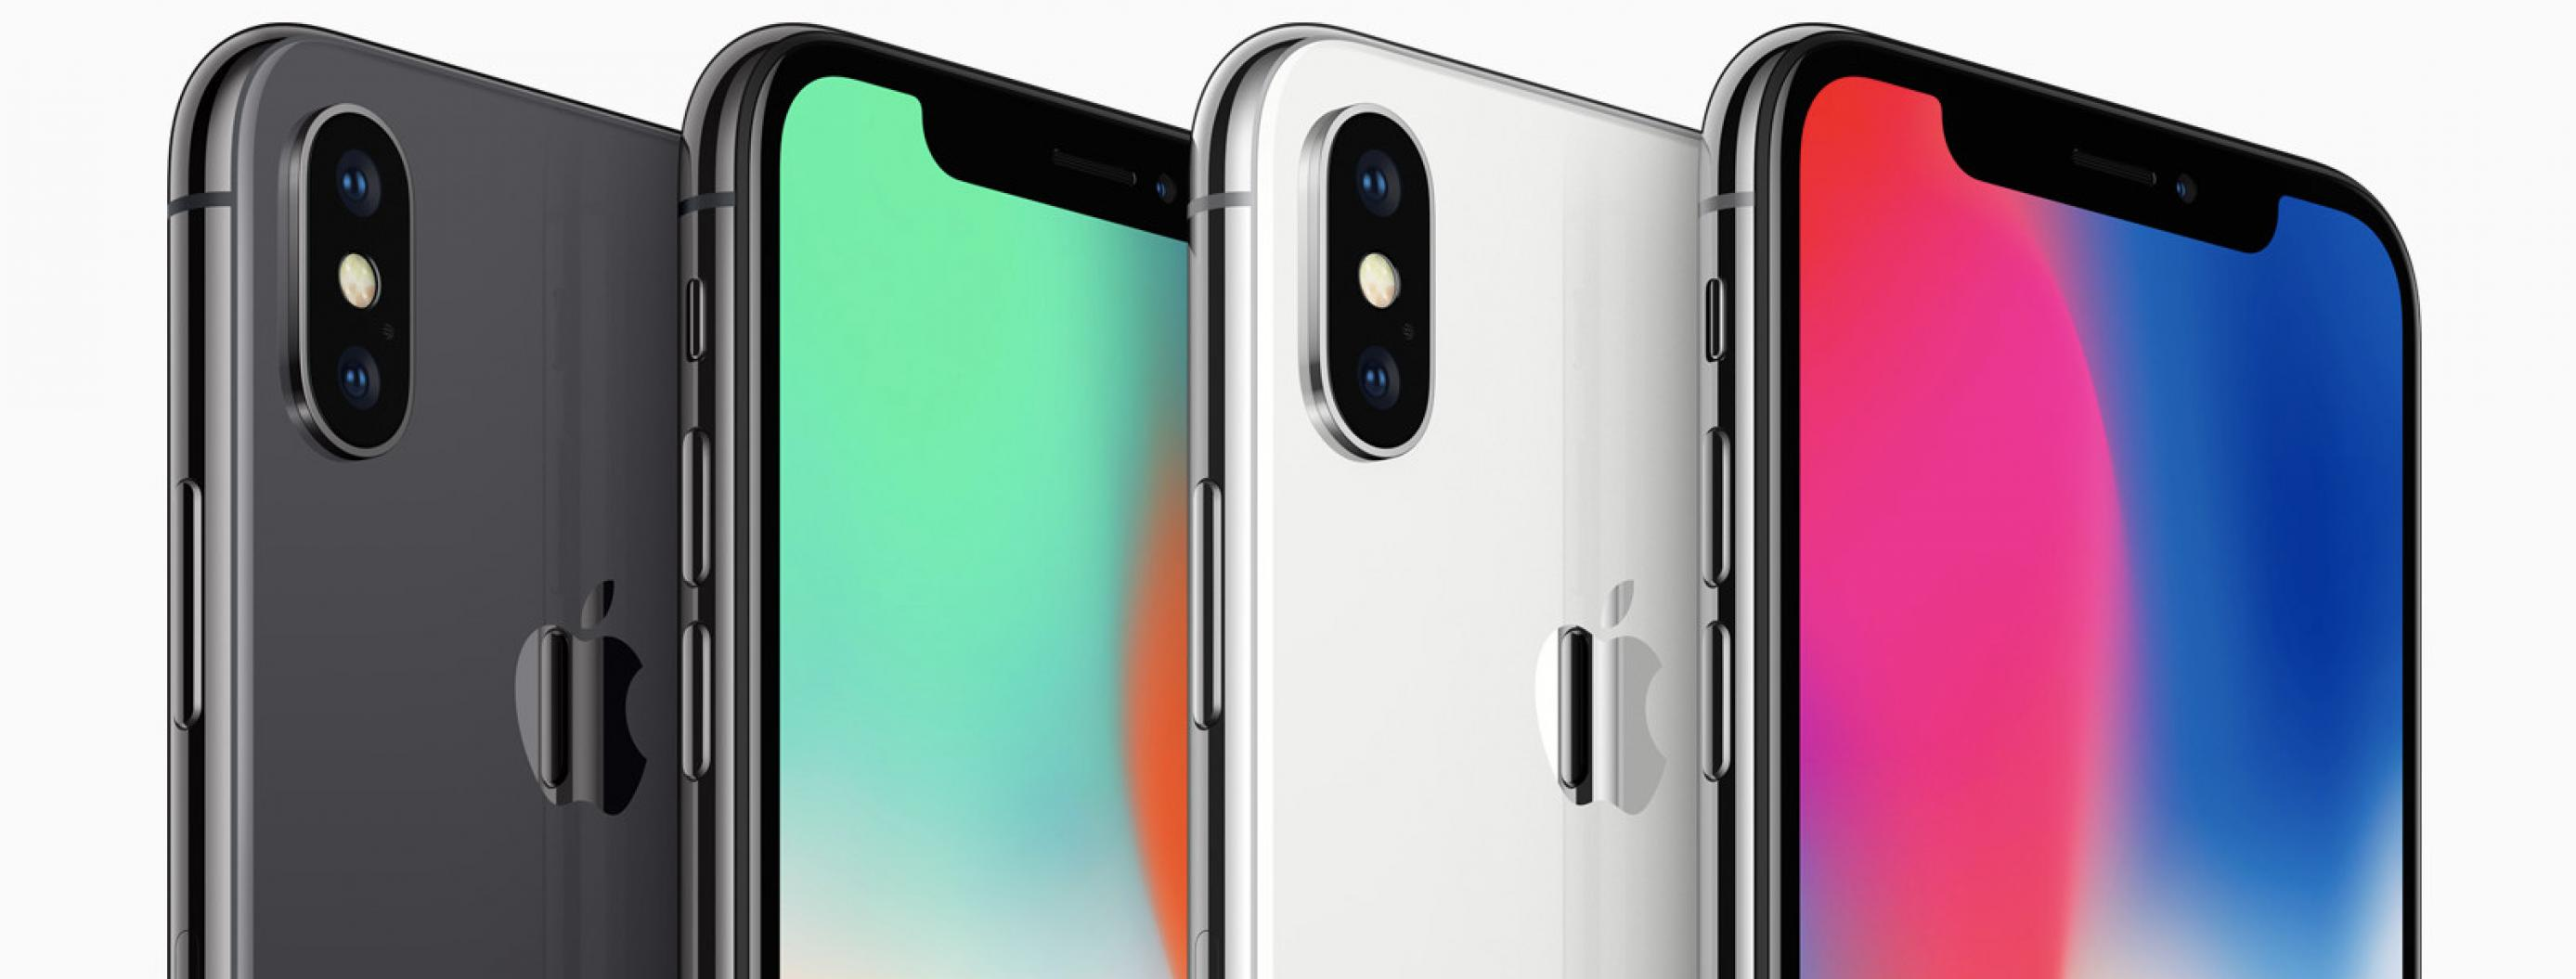 New iPhone Rumors - Here's What We Know So Far